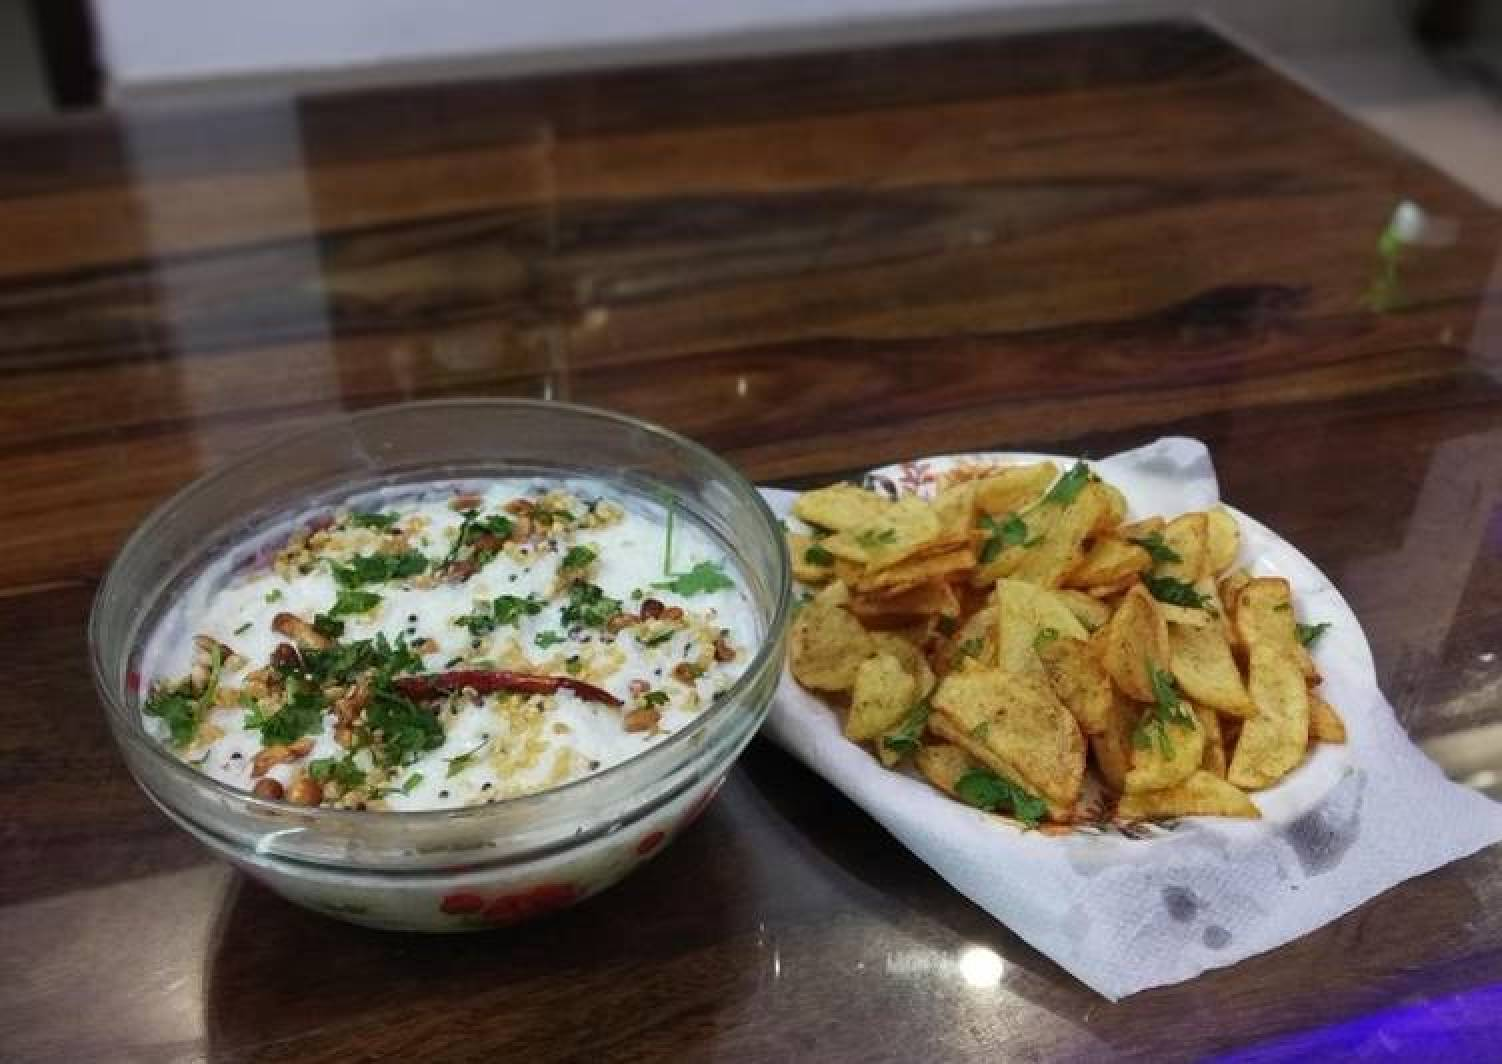 Curd rice and potato fries